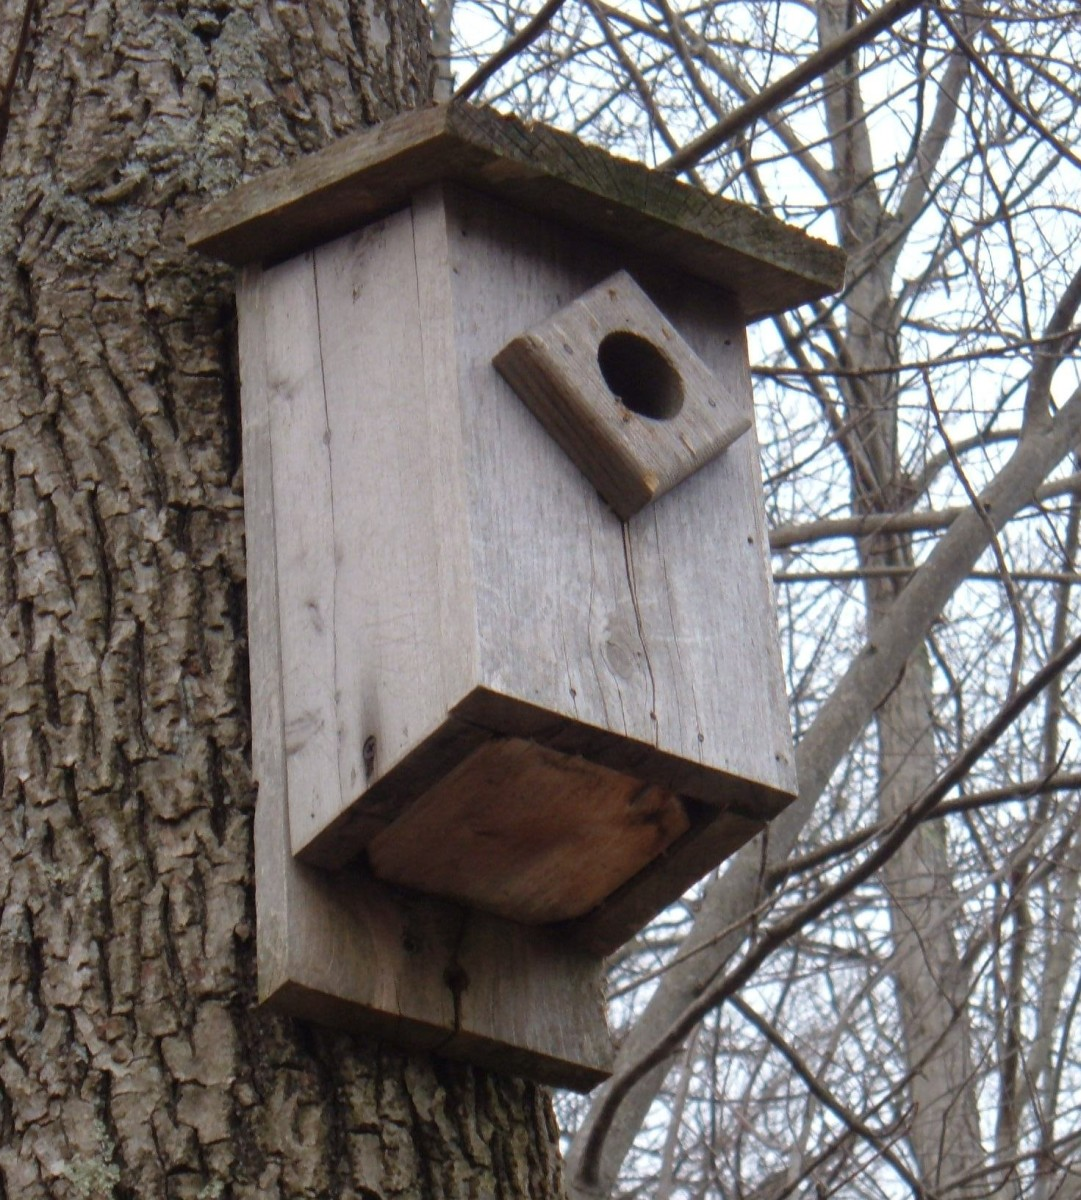 I made this bluebird house several years ago. The pine was left natural and has weathered to silvery-gray color.